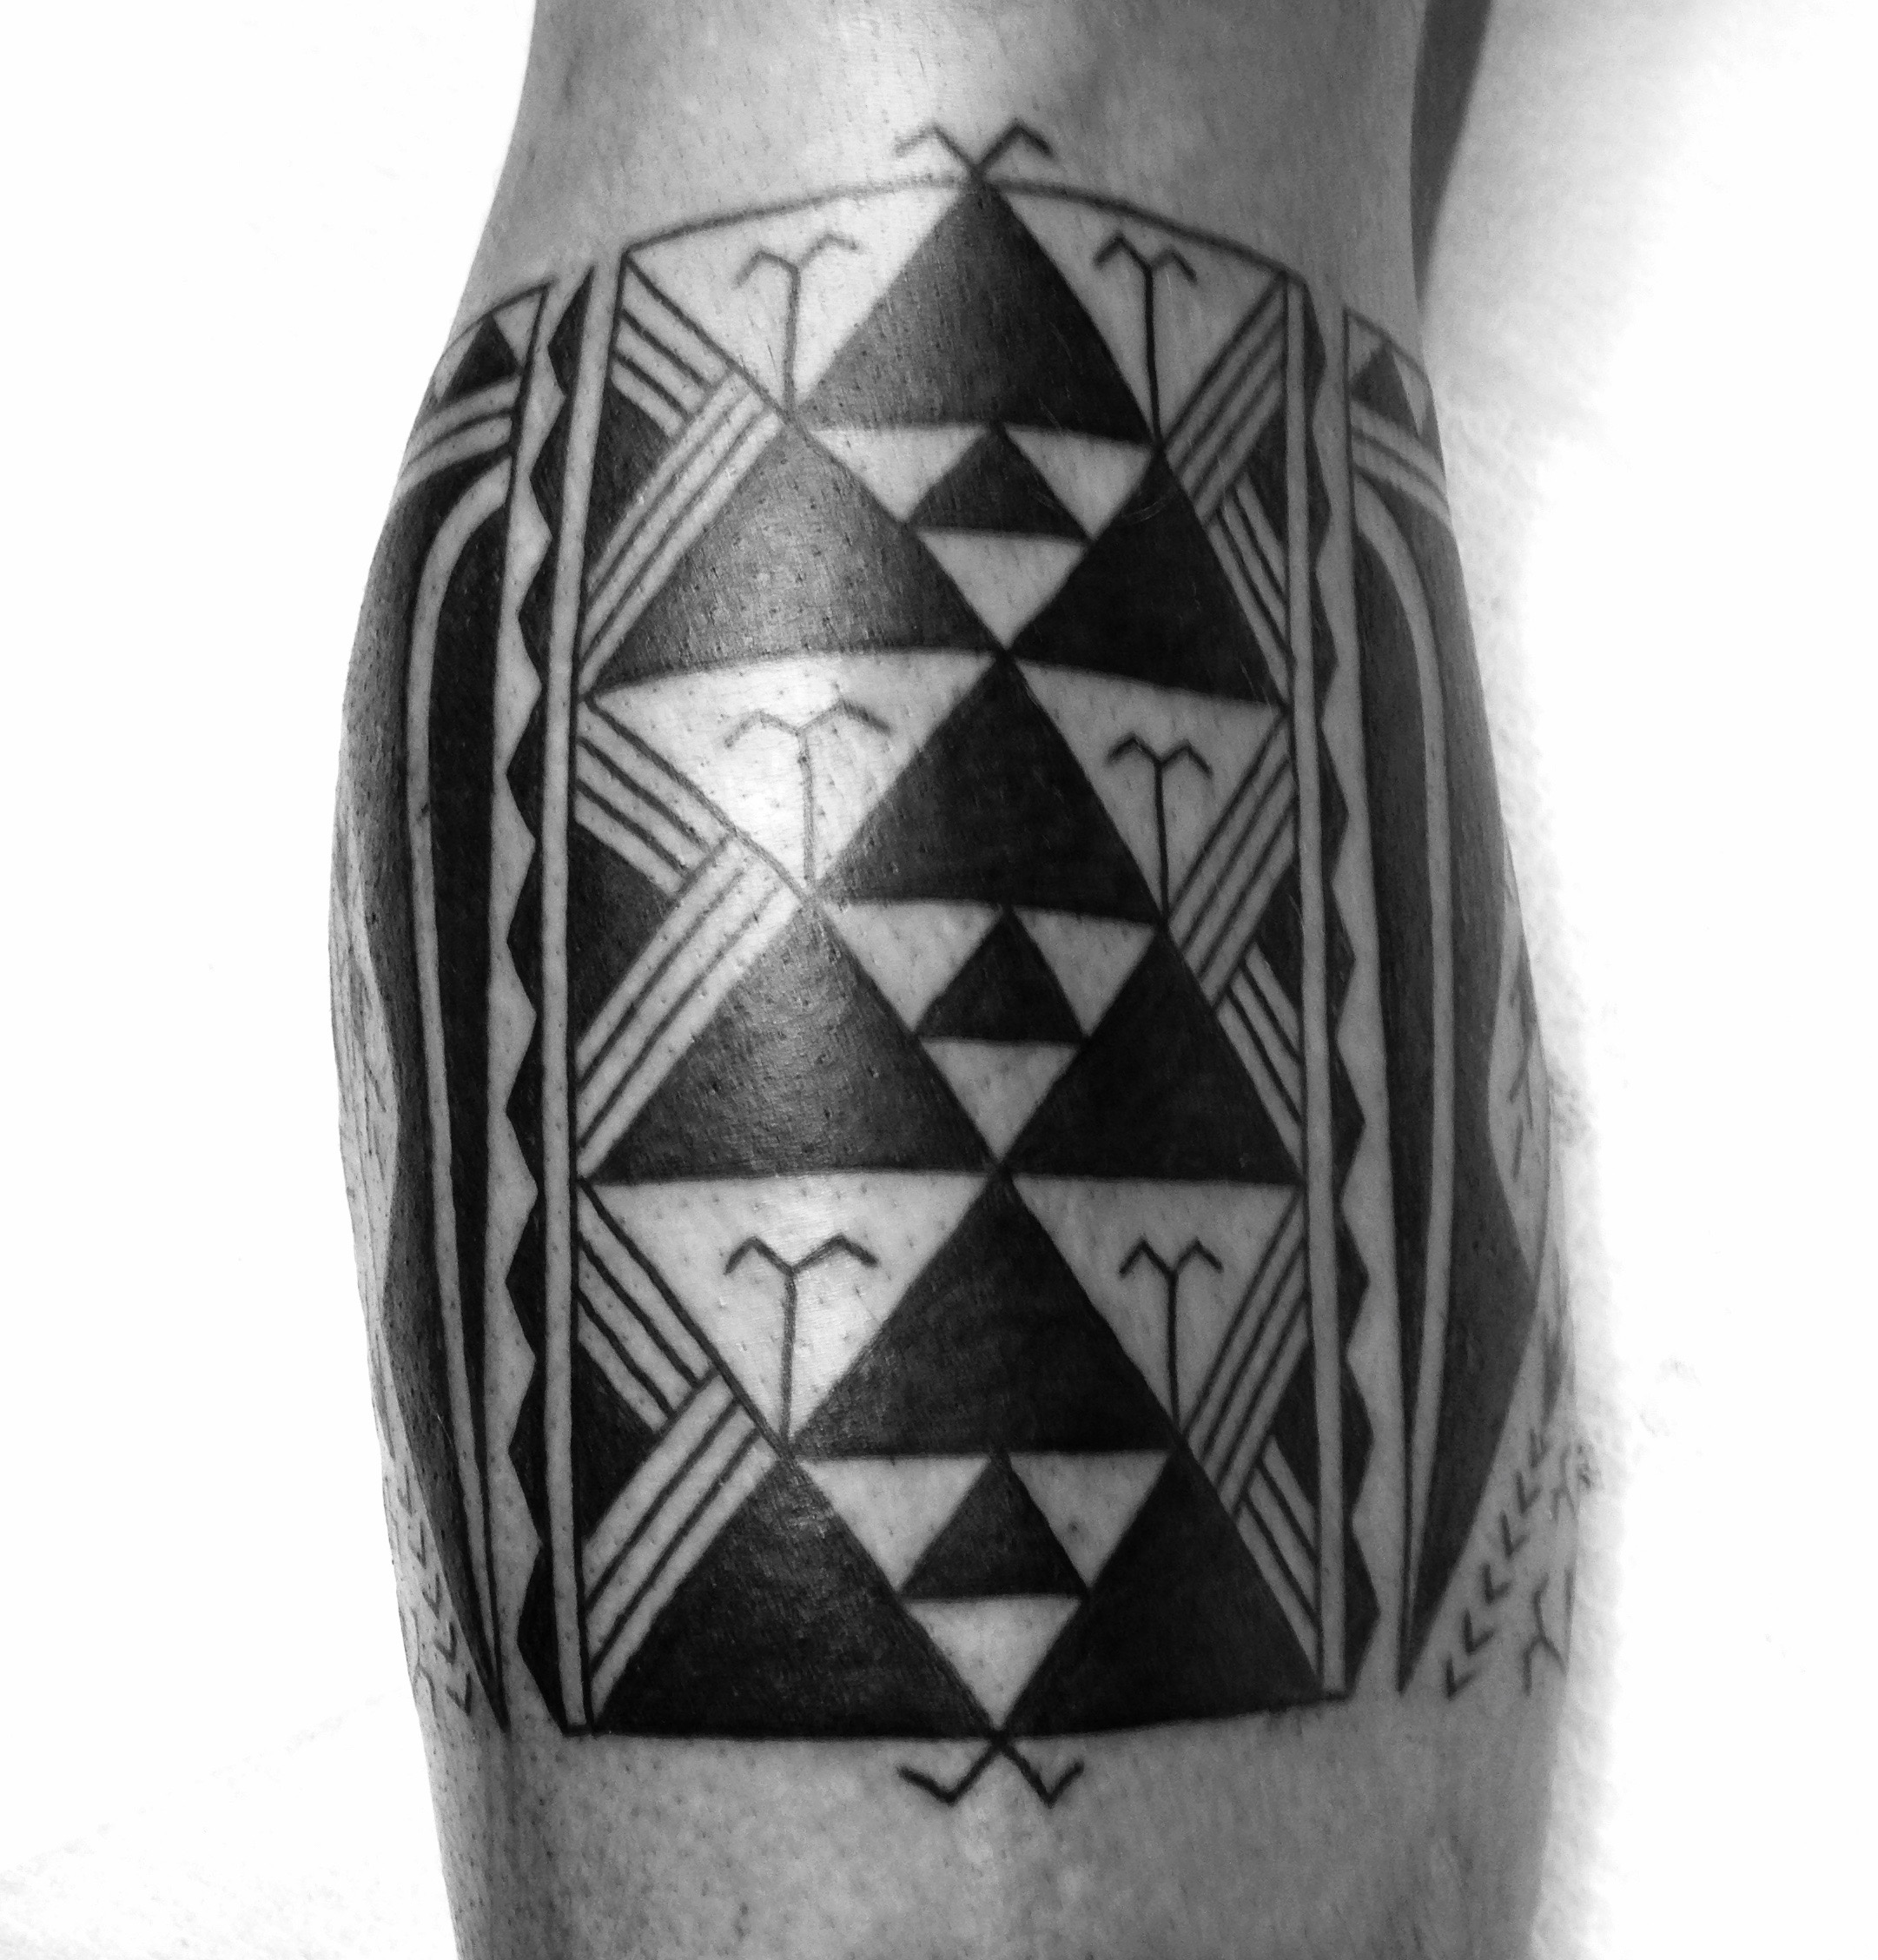 Marquesan calf tattoo